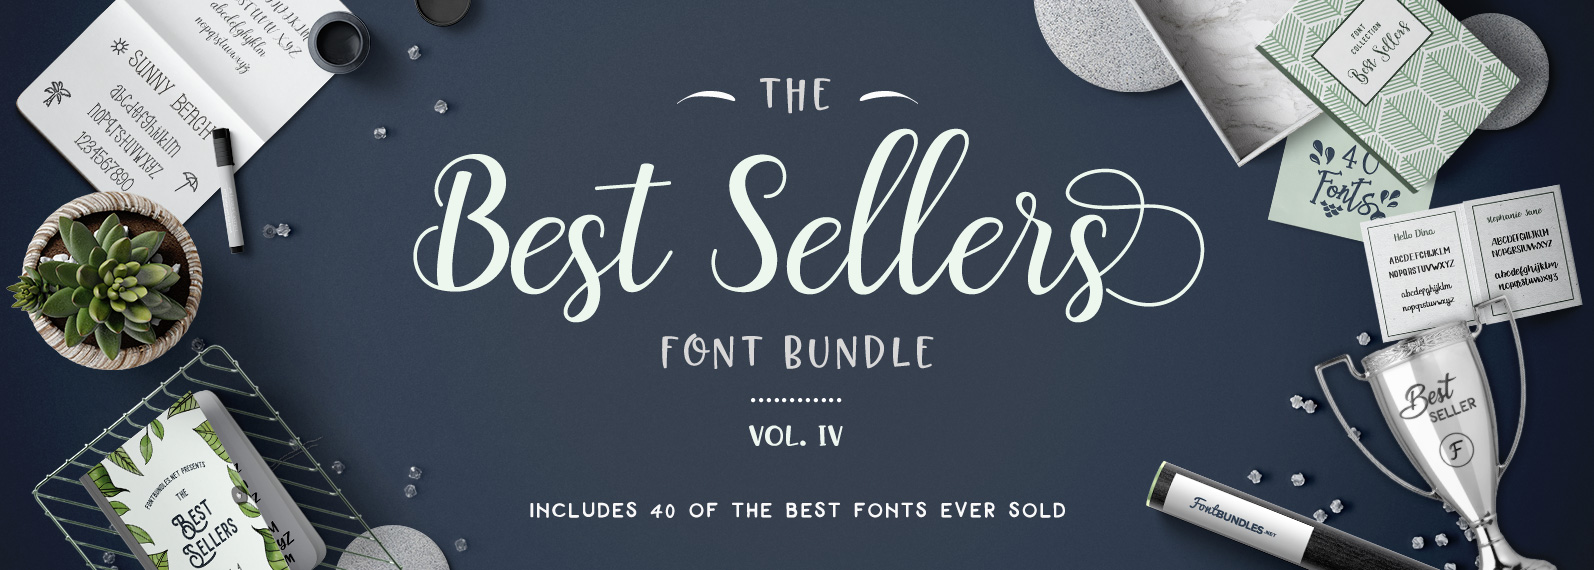 Best Sellers Bundle Vol IV Cover